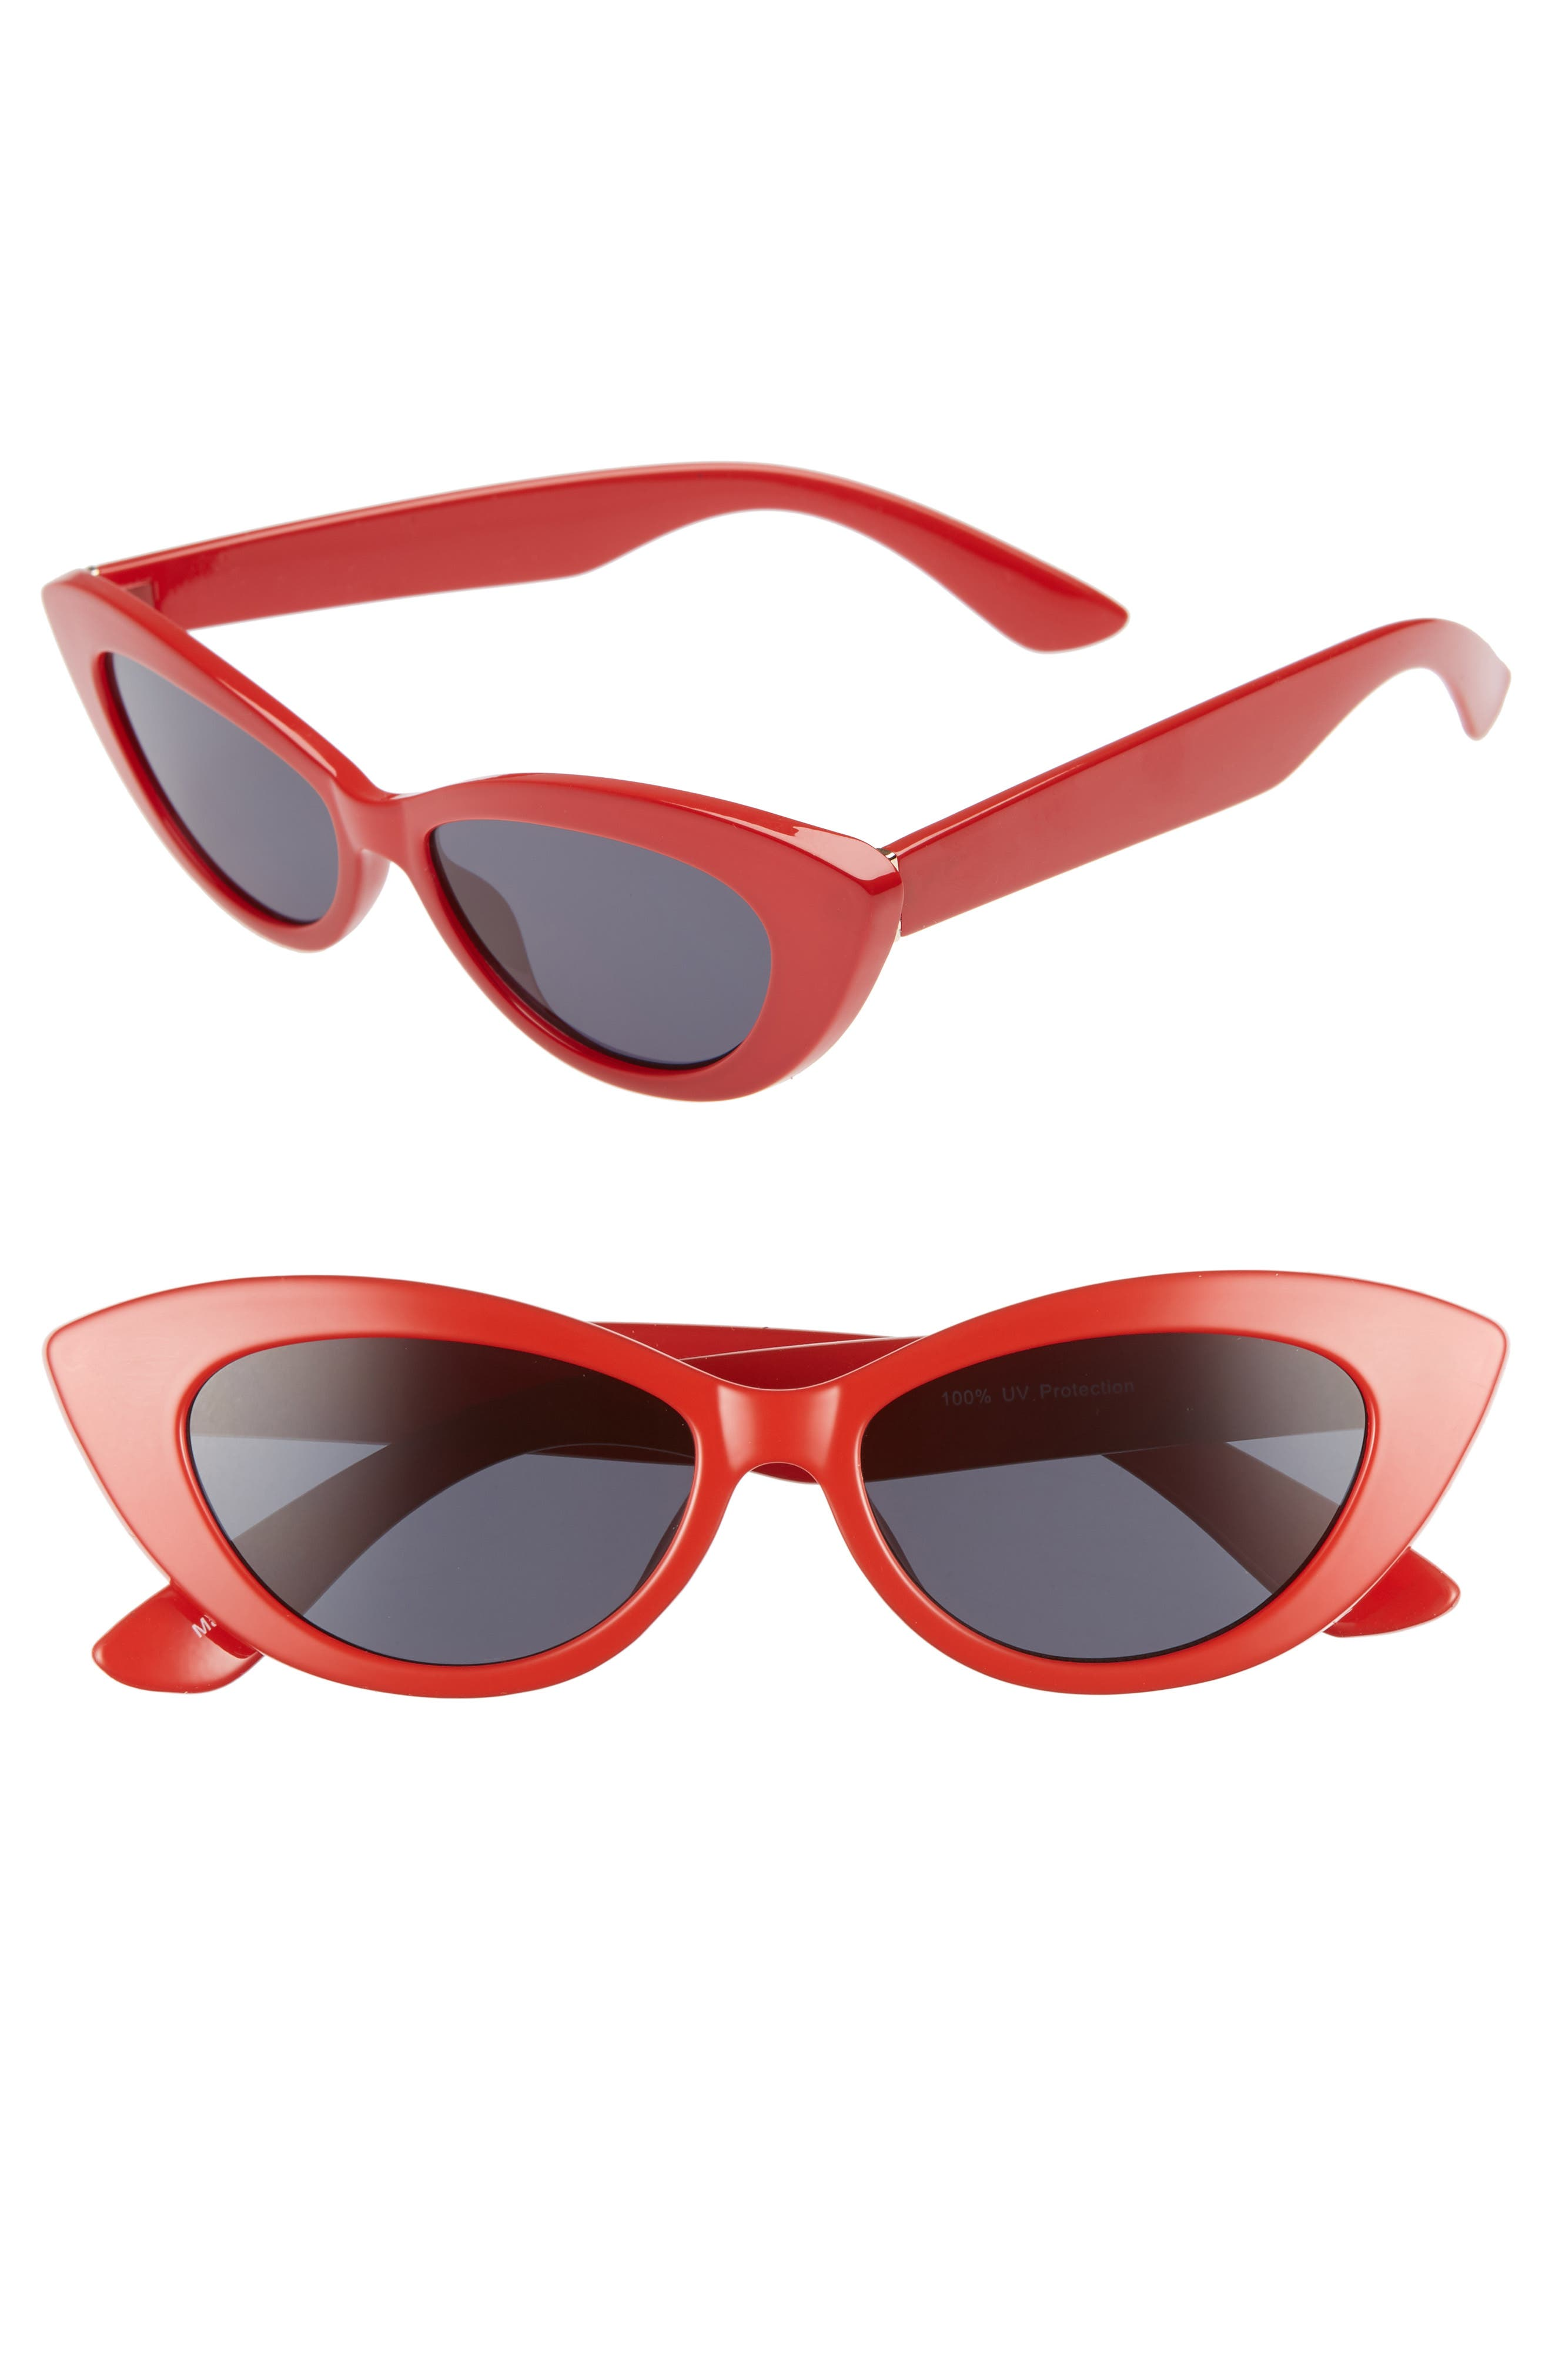 51mm Cat Eye Sunglasses,                         Main,                         color, RED